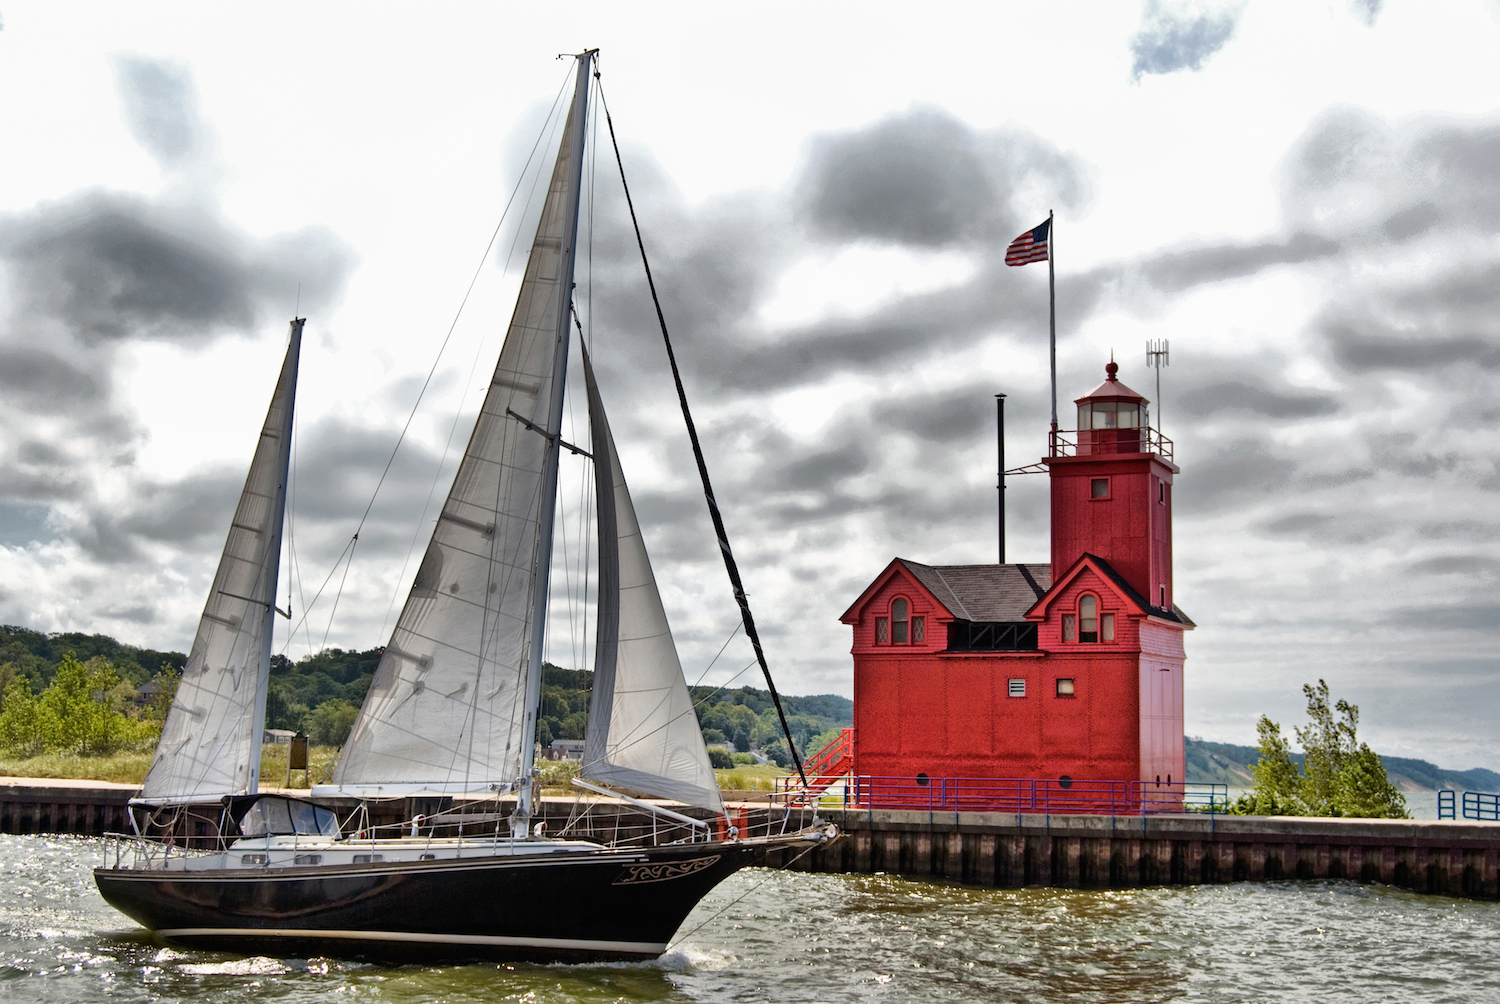 Sailboat sailing past a red lighthouse in Holland, Michigan.